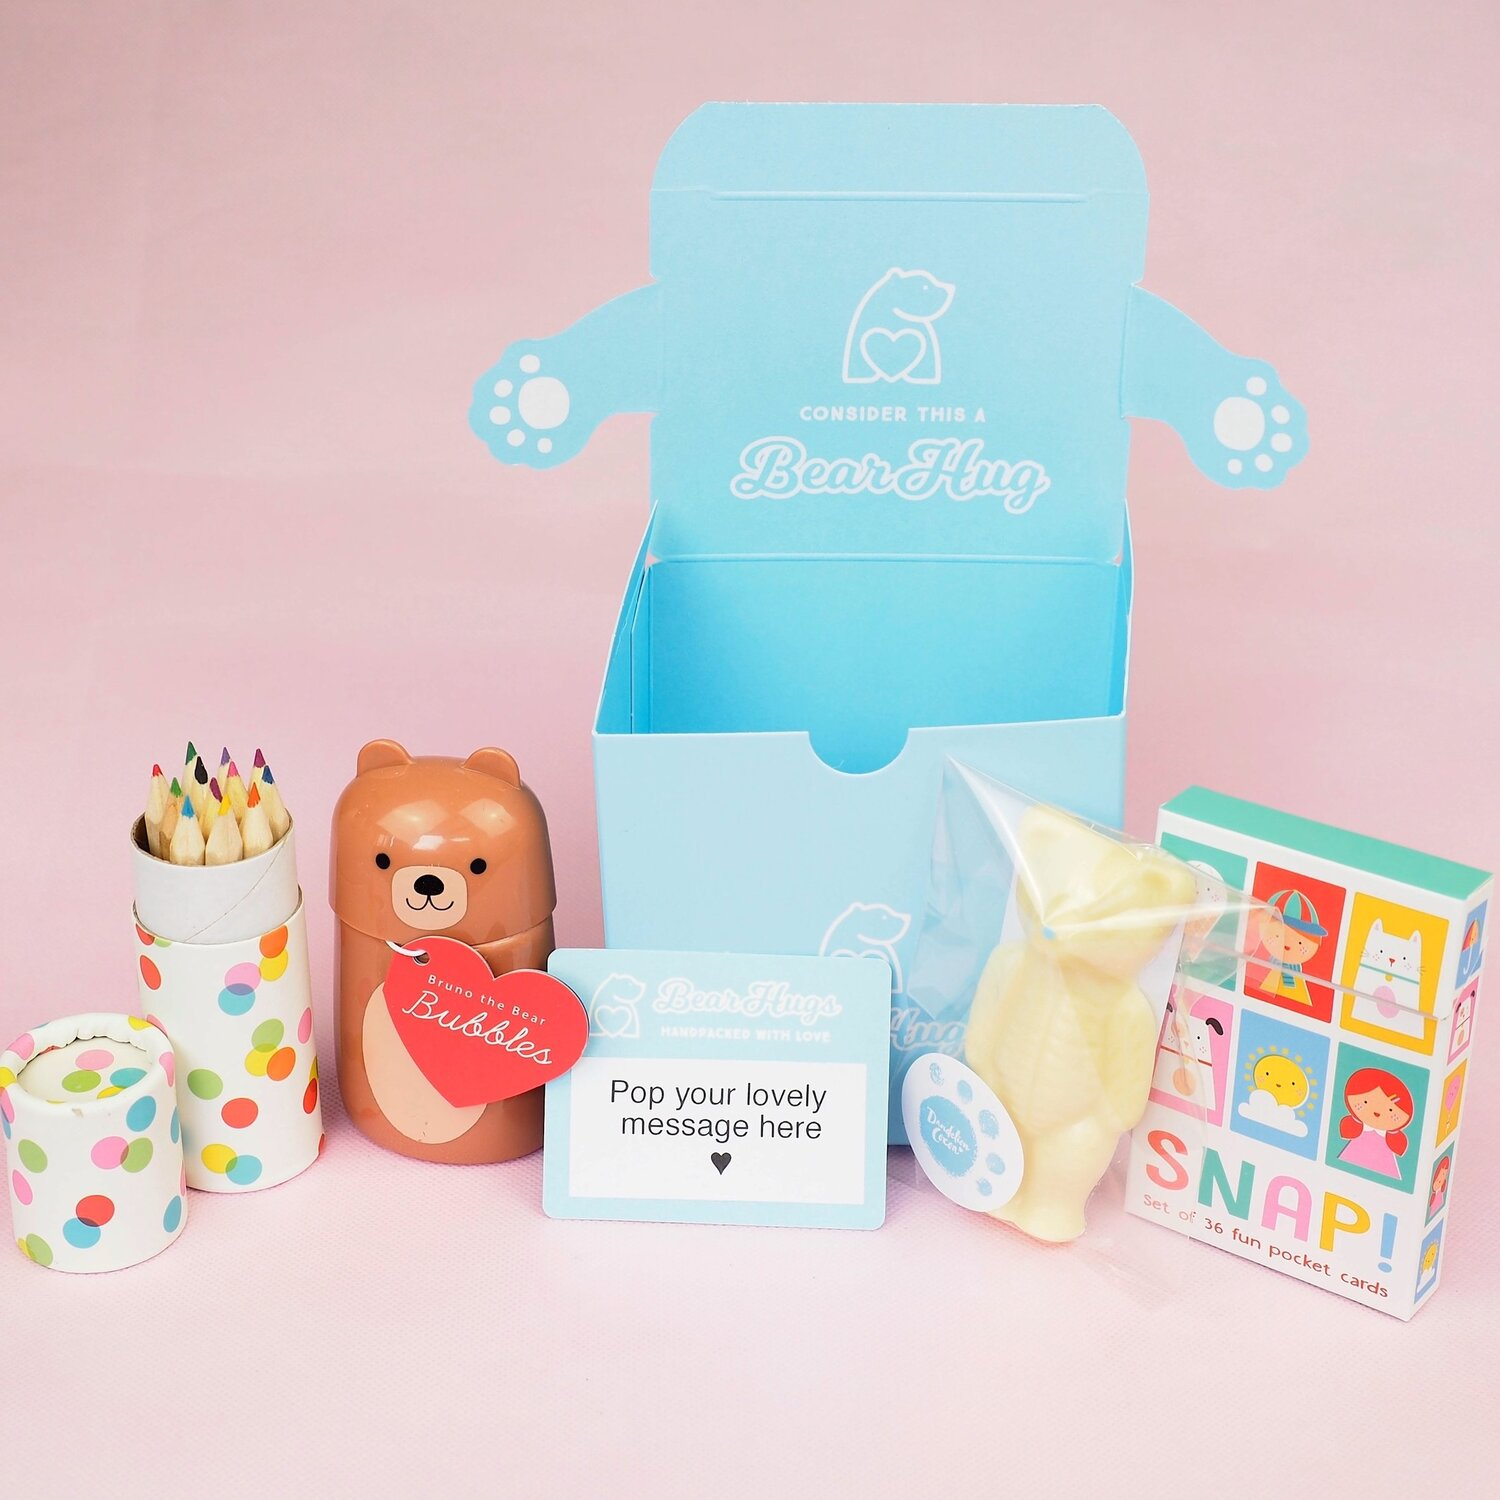 Snap, Scribble and Pop! Hug in a Box — BearHugs | Send a 'Hug in a Box'  Thinking of You Gift by Post